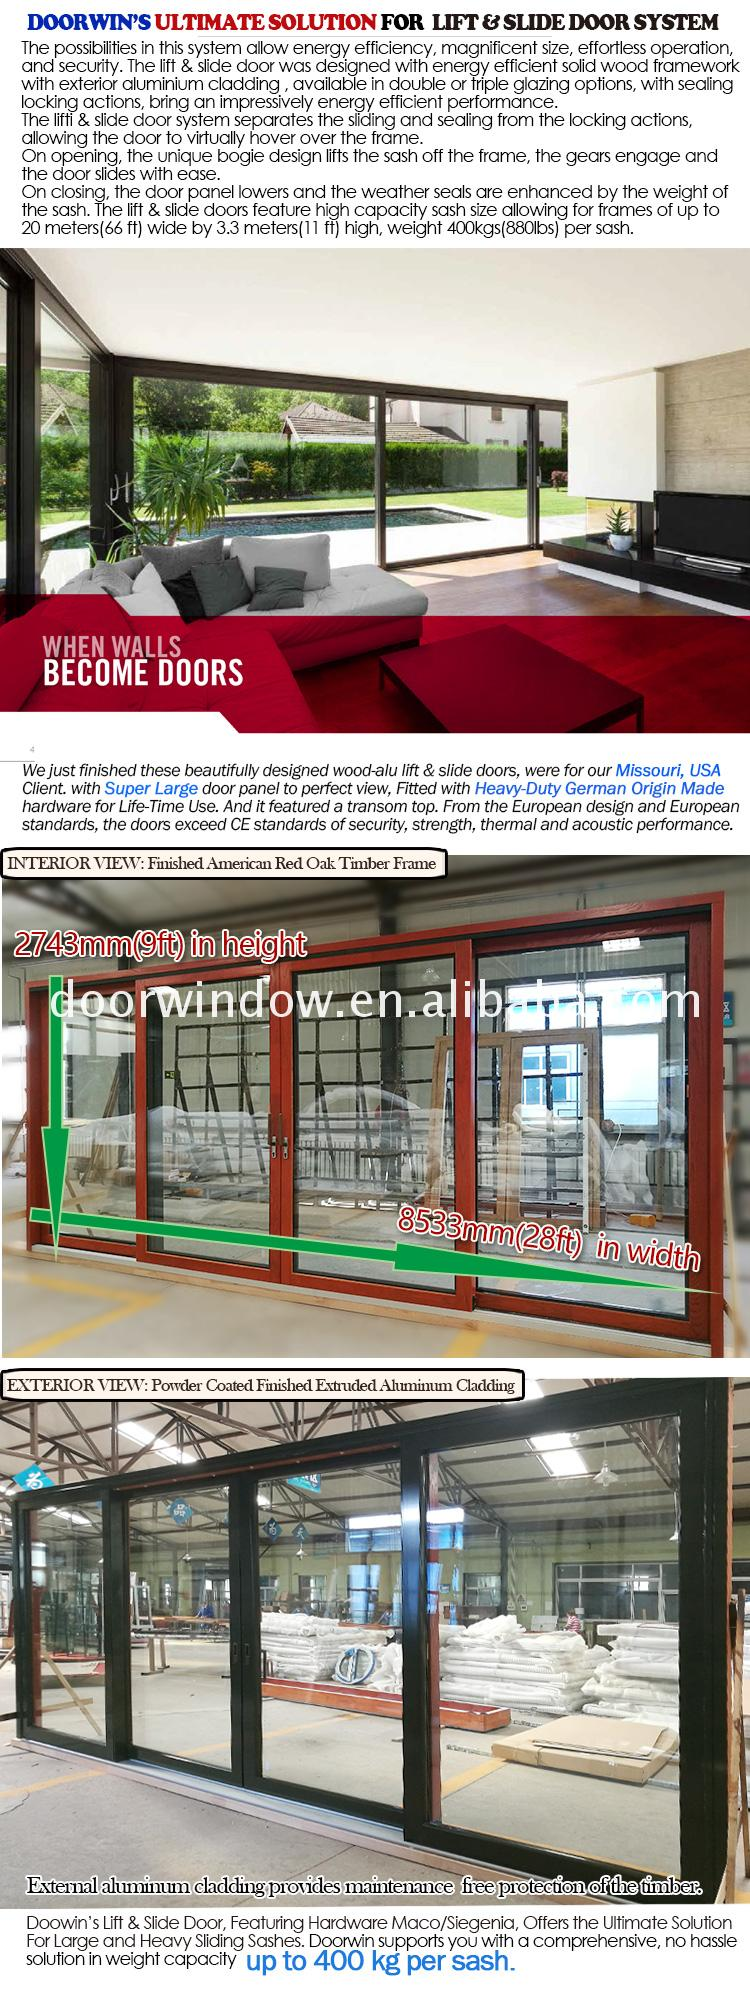 Factory made sliding security door rollers porch doors patio with tinted glass